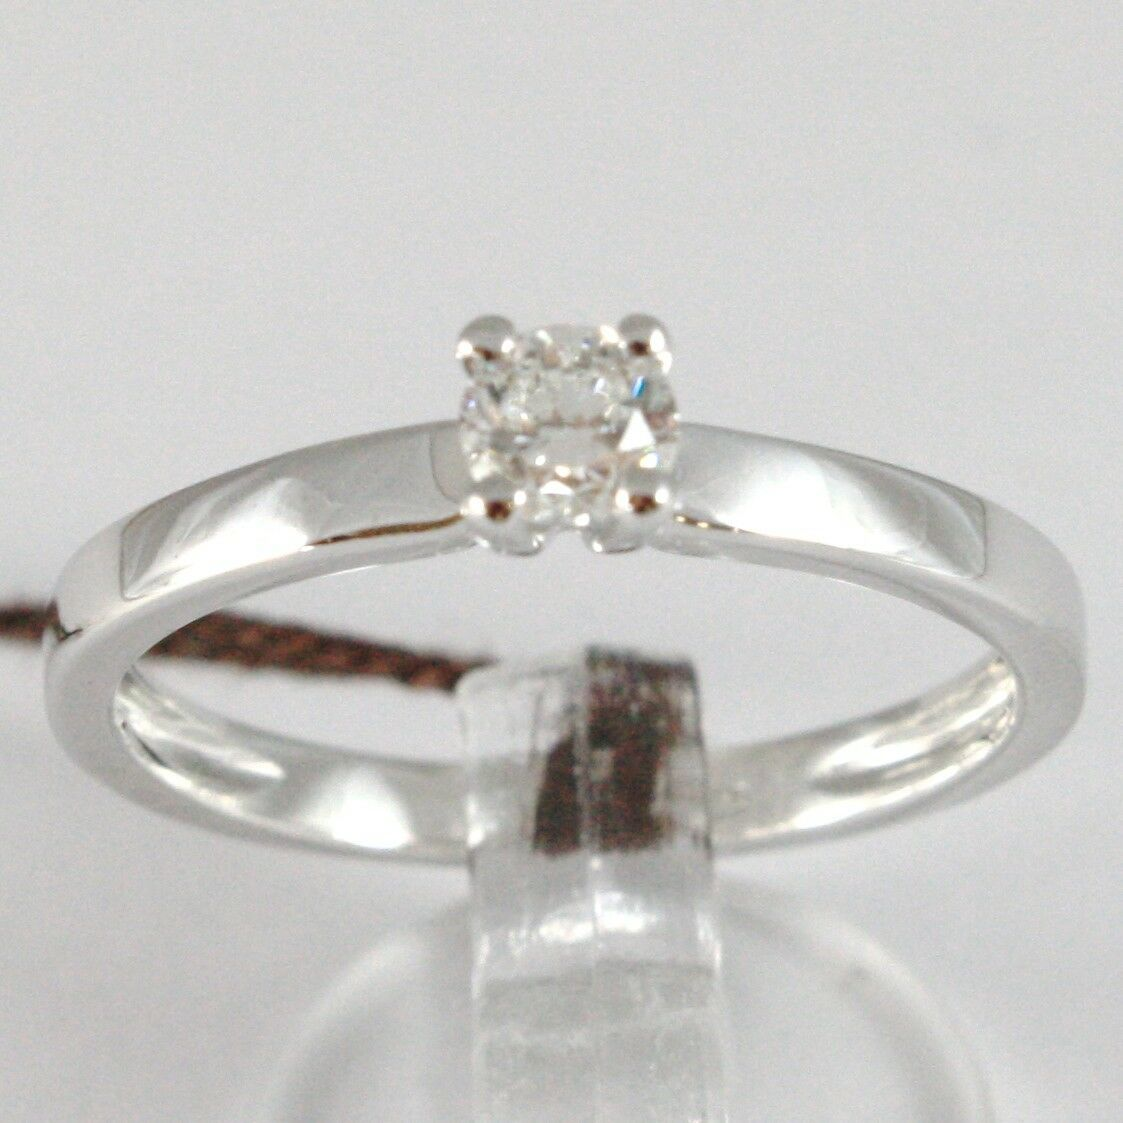 White Gold Ring 750 18K, Solitaire, Shank Square, Diamond Carat 0.27